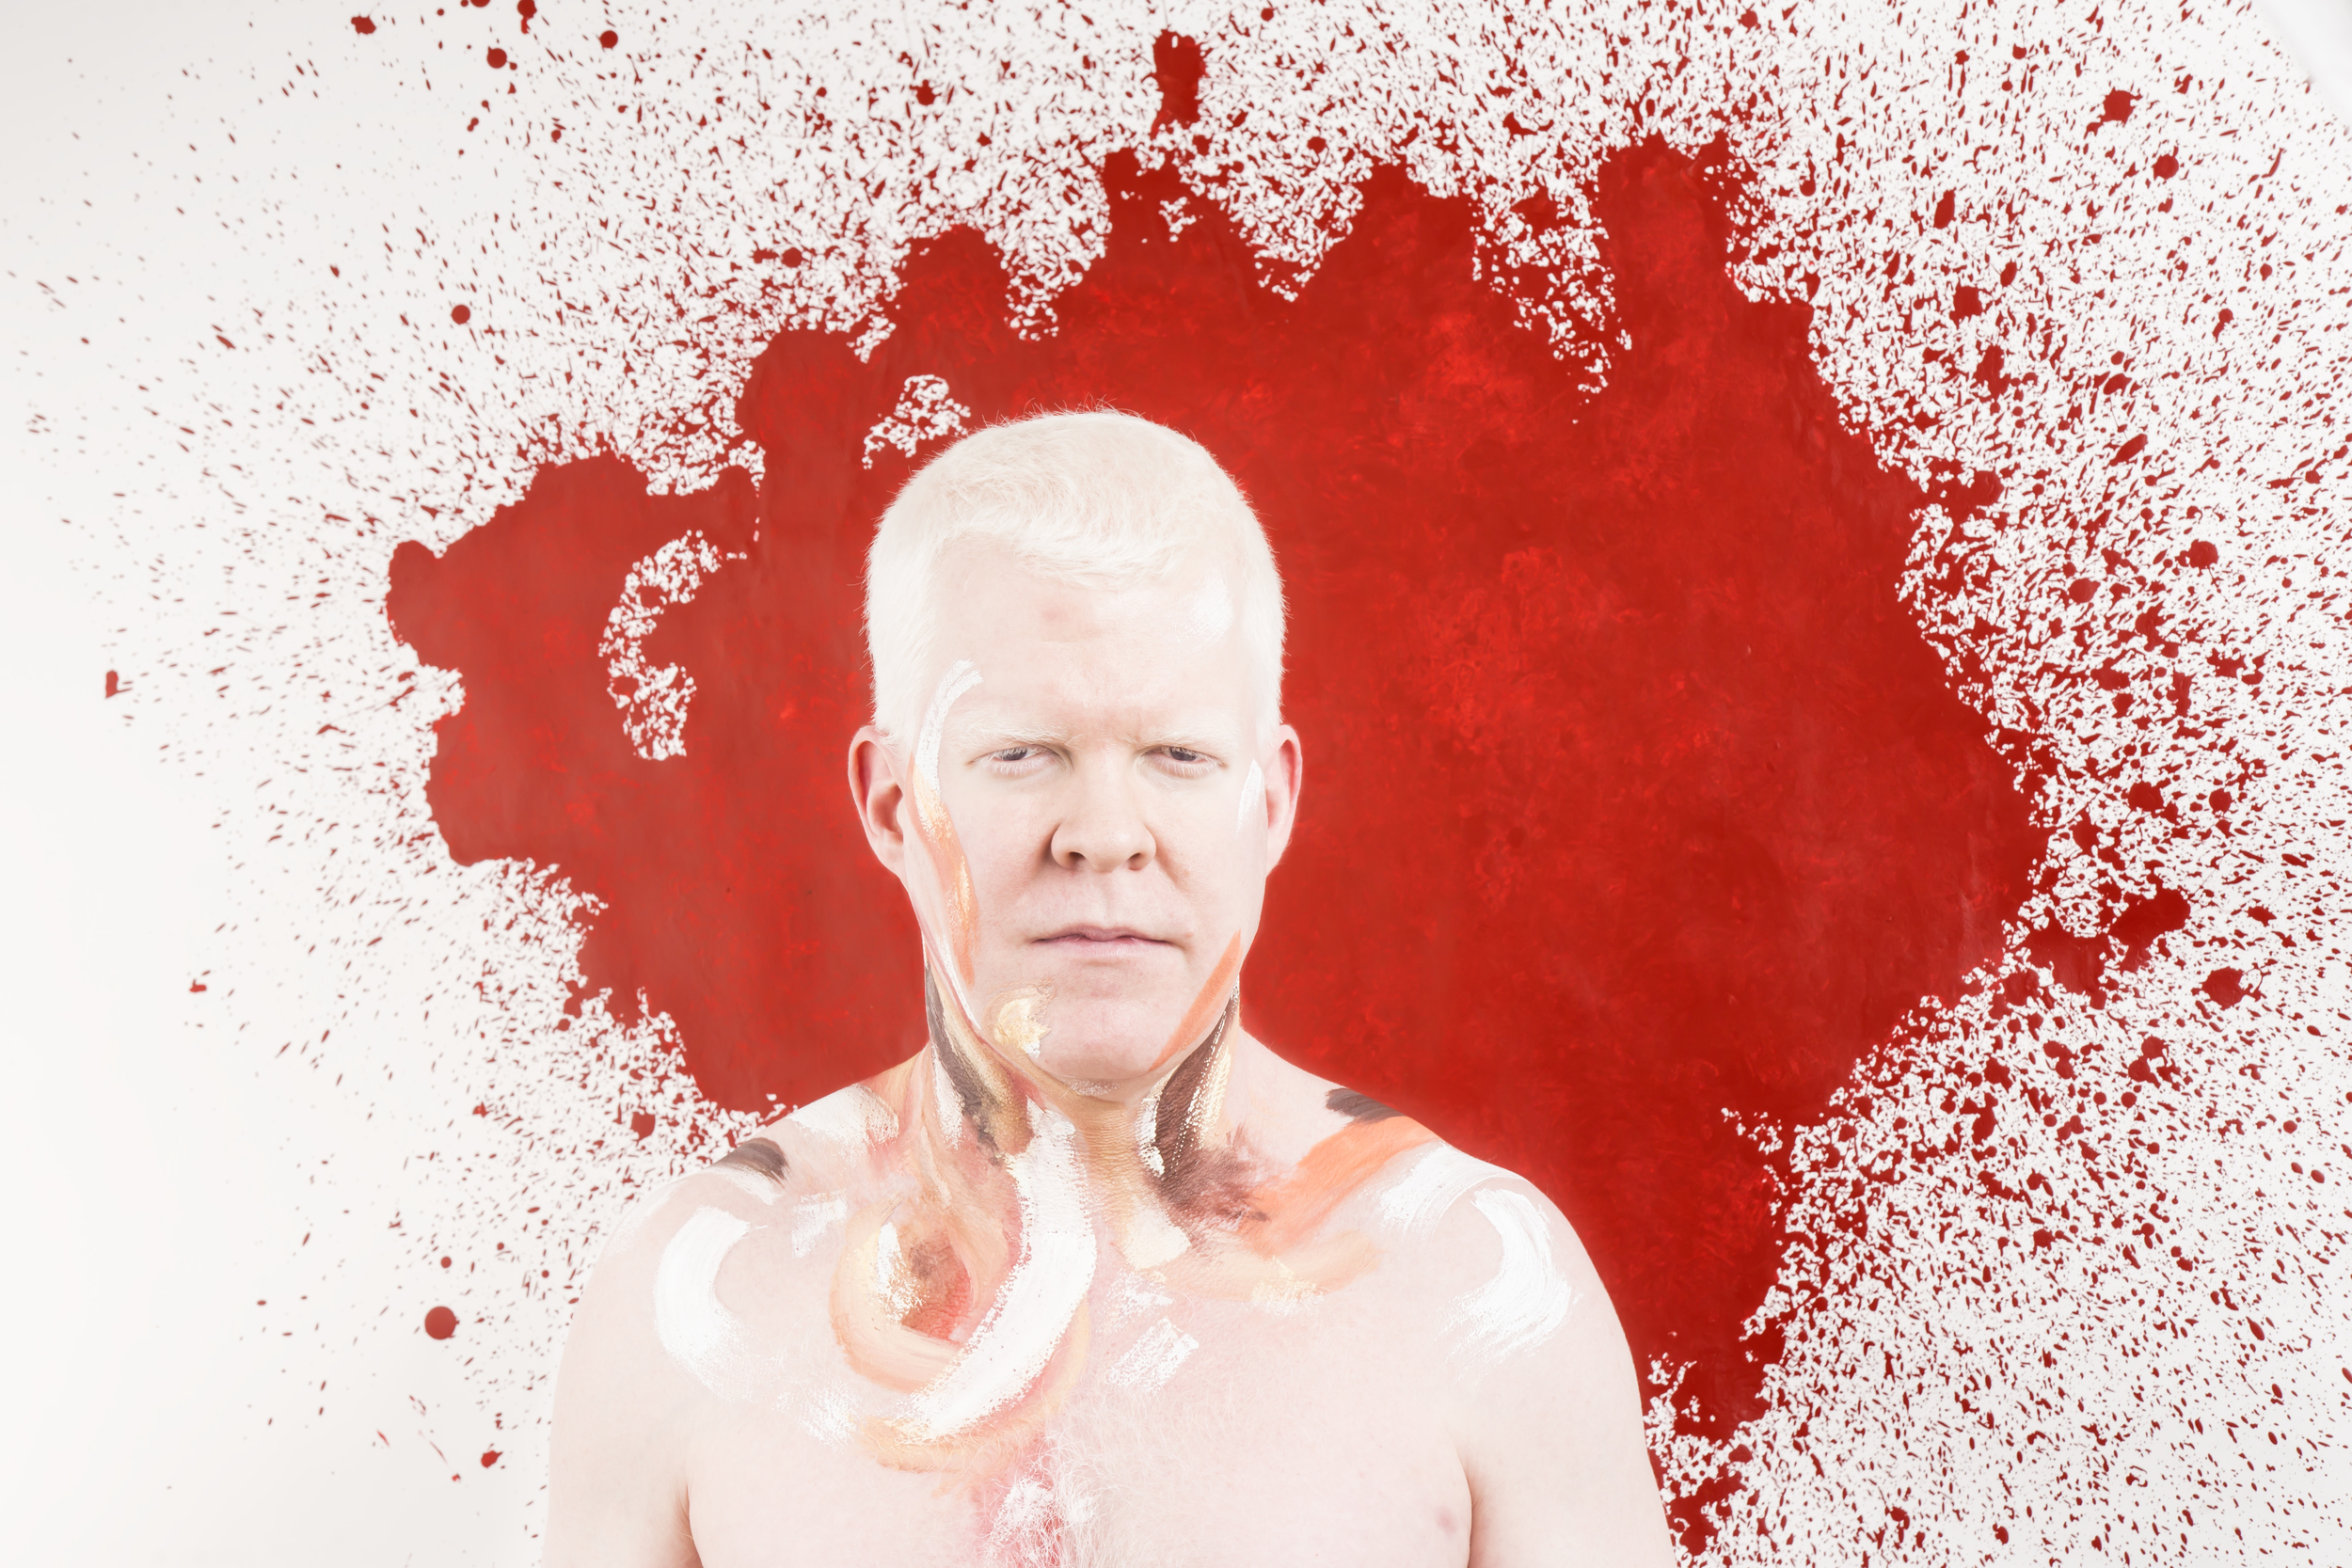 Albino Portrait with painting- Paul- Facemotions Photography.jpg